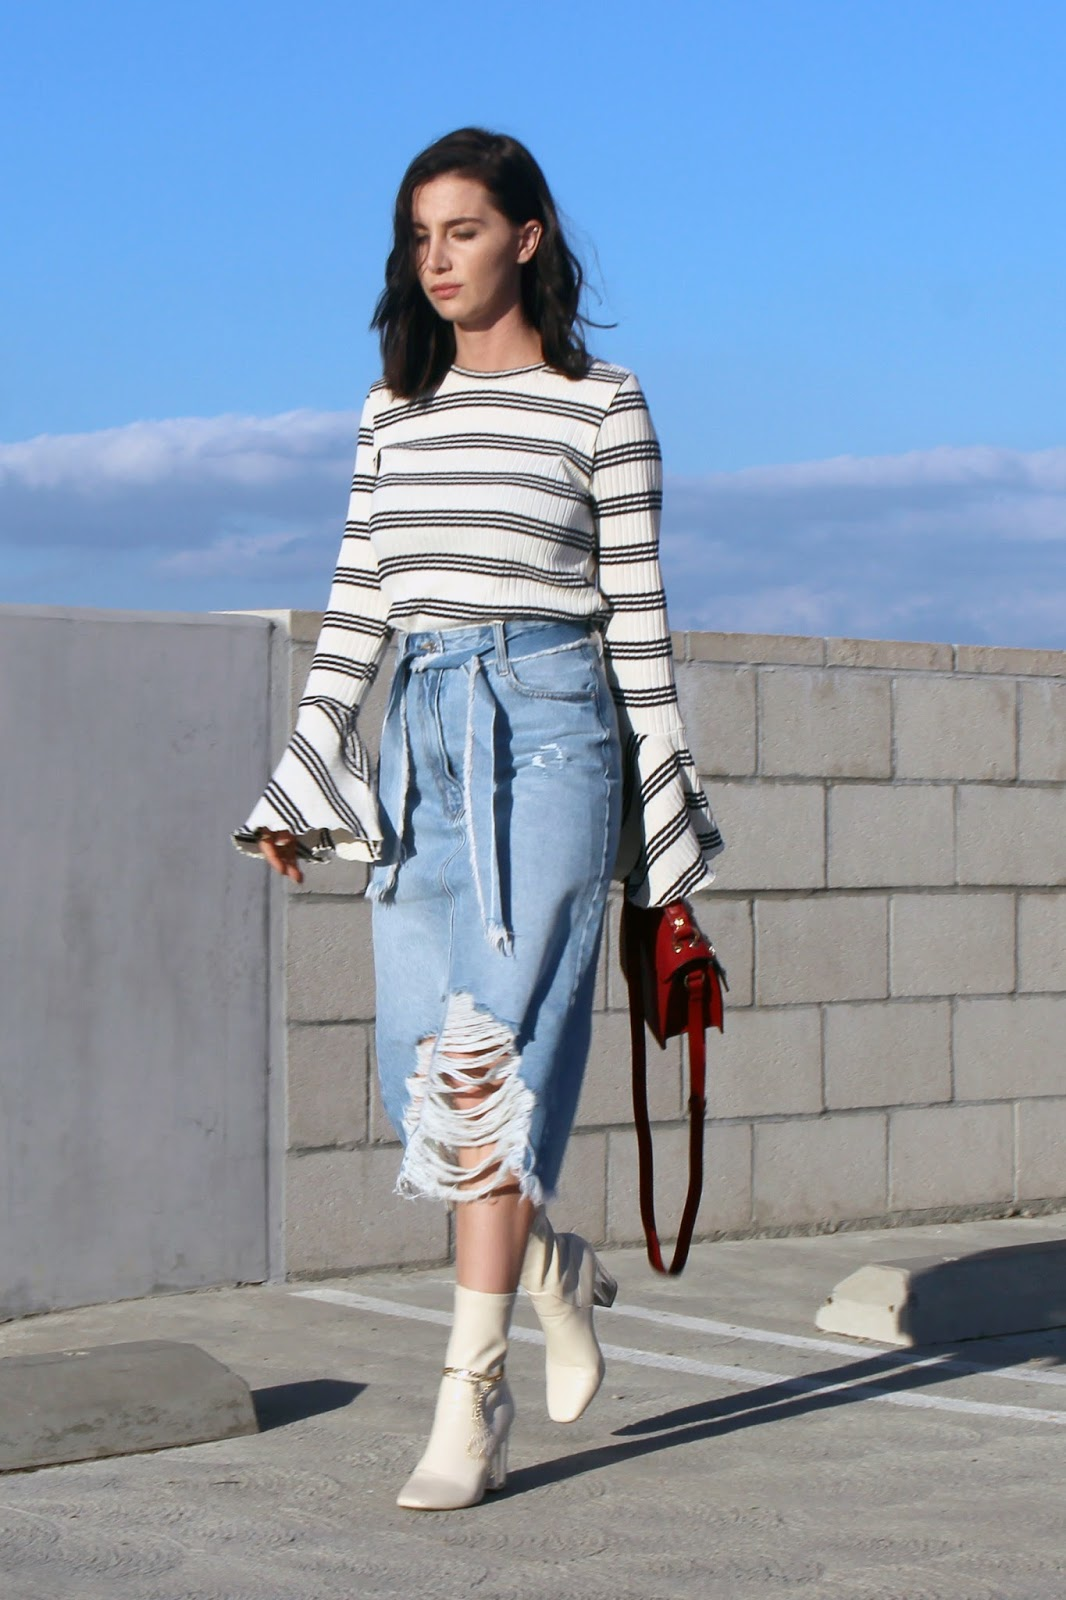 denim midi skirt, flared sleeve top, ankle boots street style